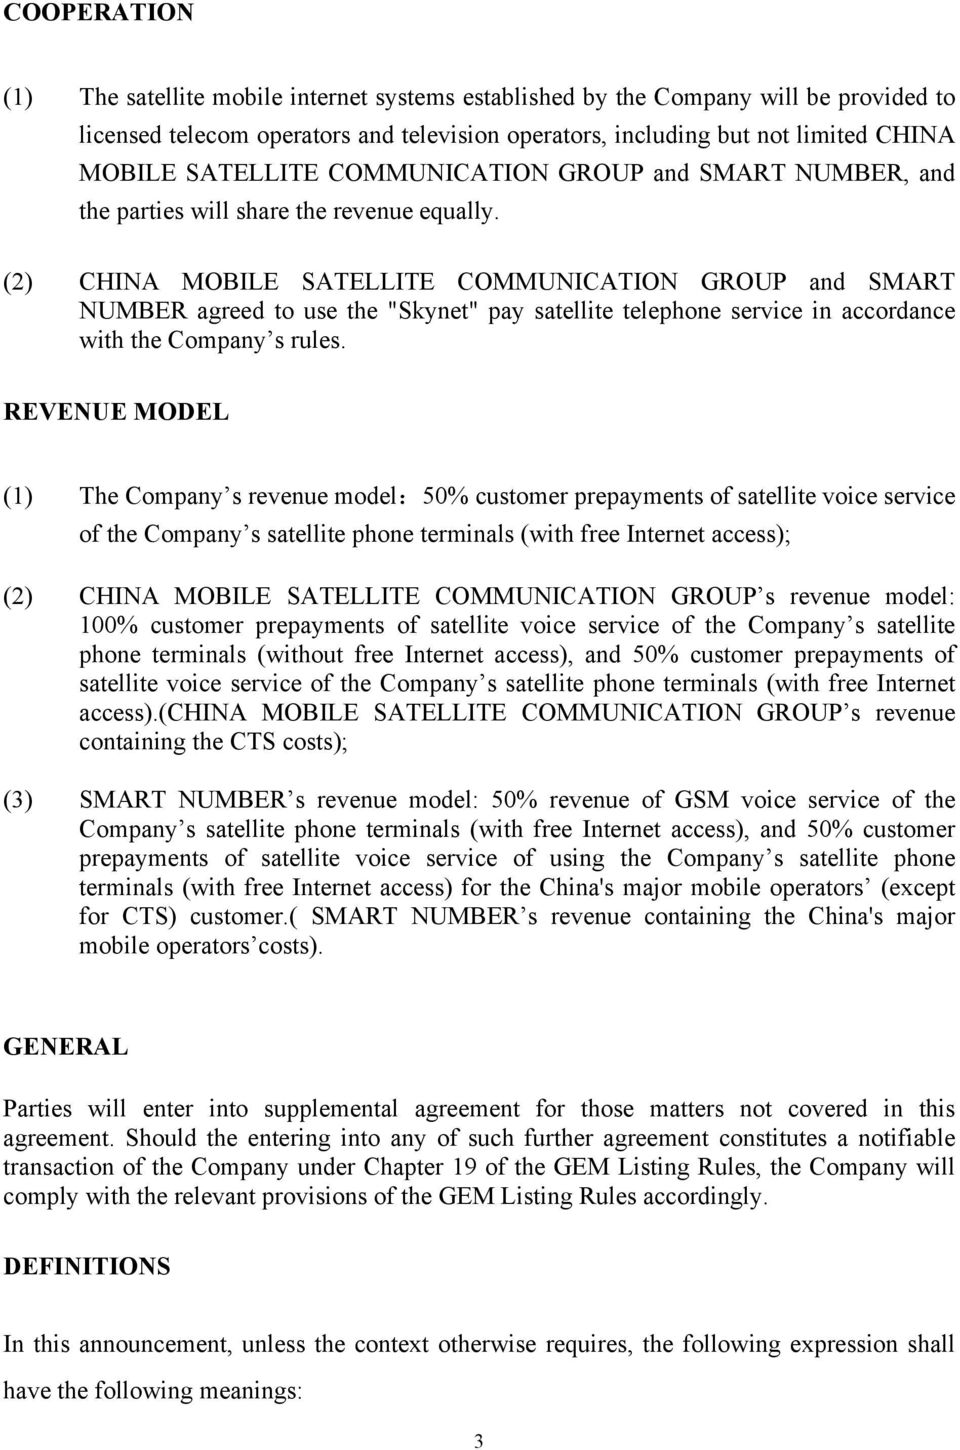 "(2) CHINA MOBILE SATELLITE COMMUNICATION GROUP and SMART NUMBER agreed to use the ""Skynet"" pay satellite telephone service in accordance with the Company s rules."